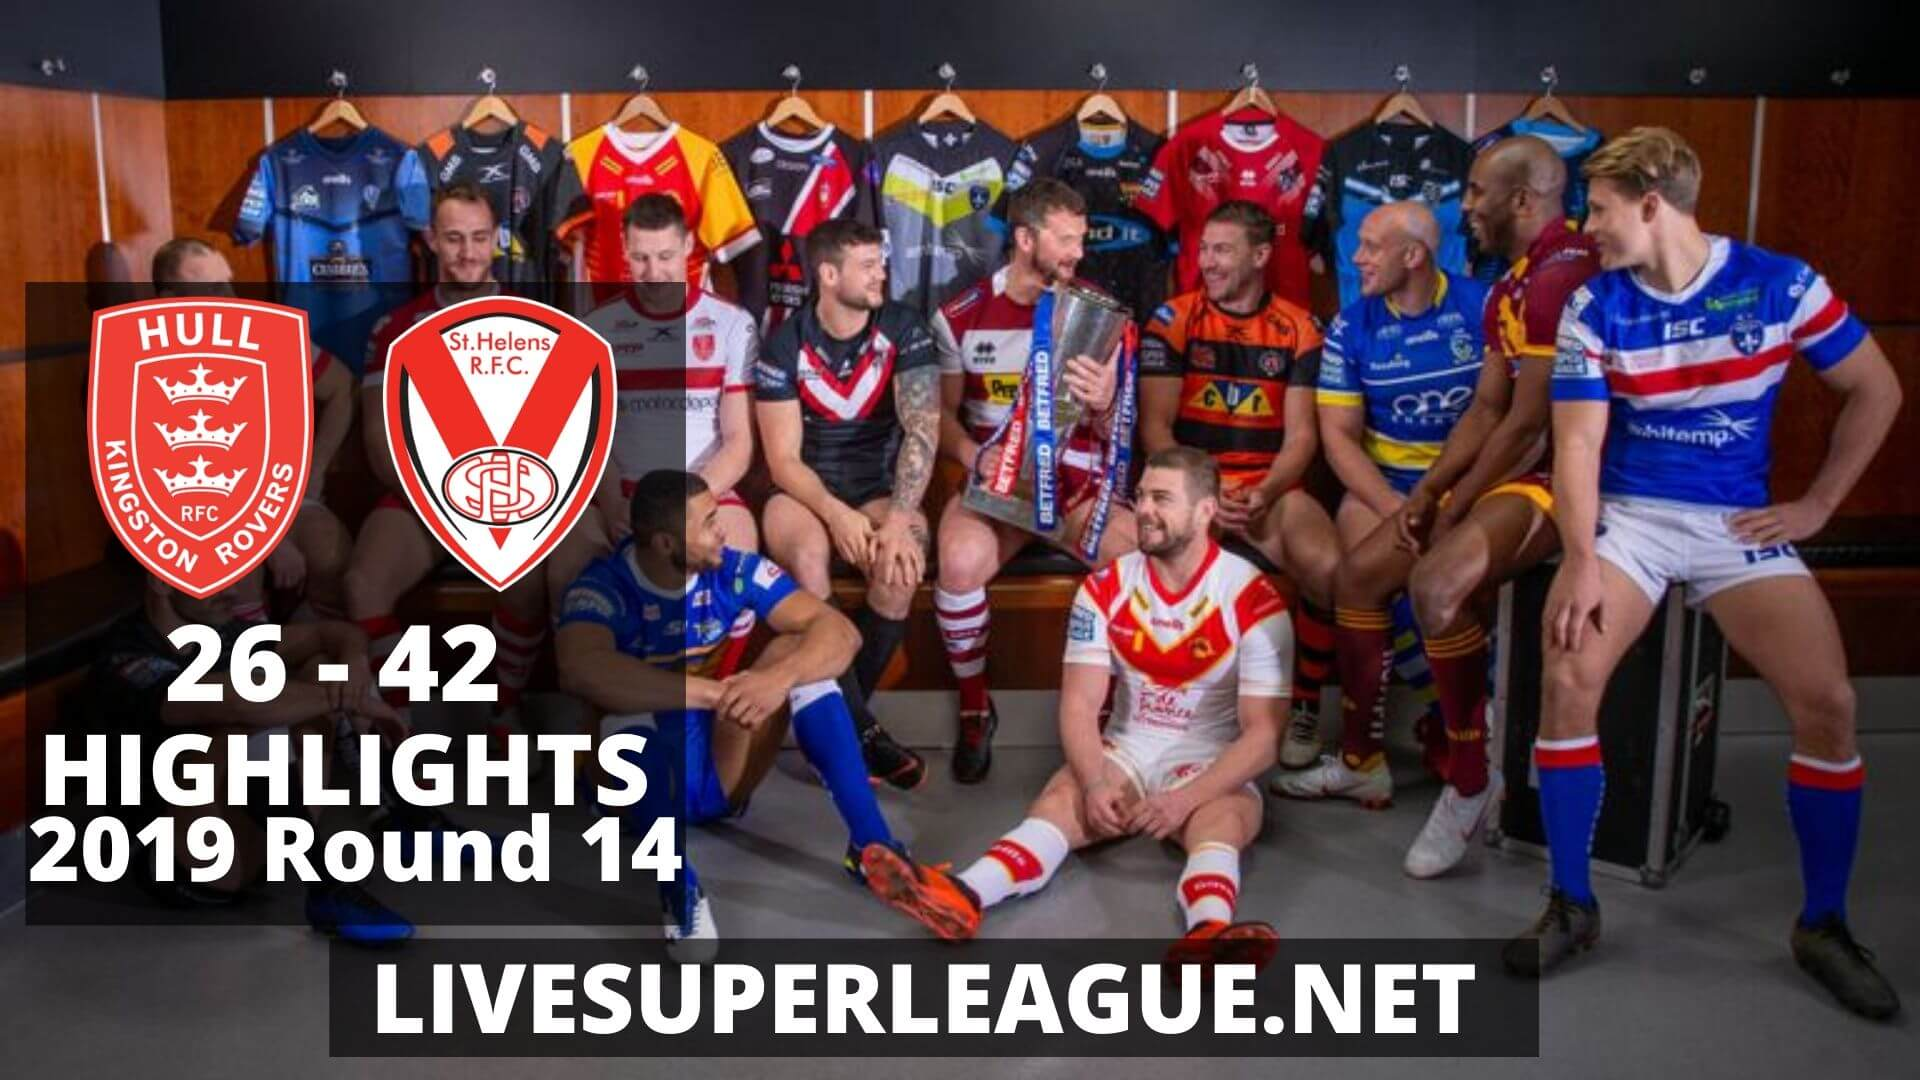 Hull Kingston Rovers Vs St Helens Highlights 2019 Round 14